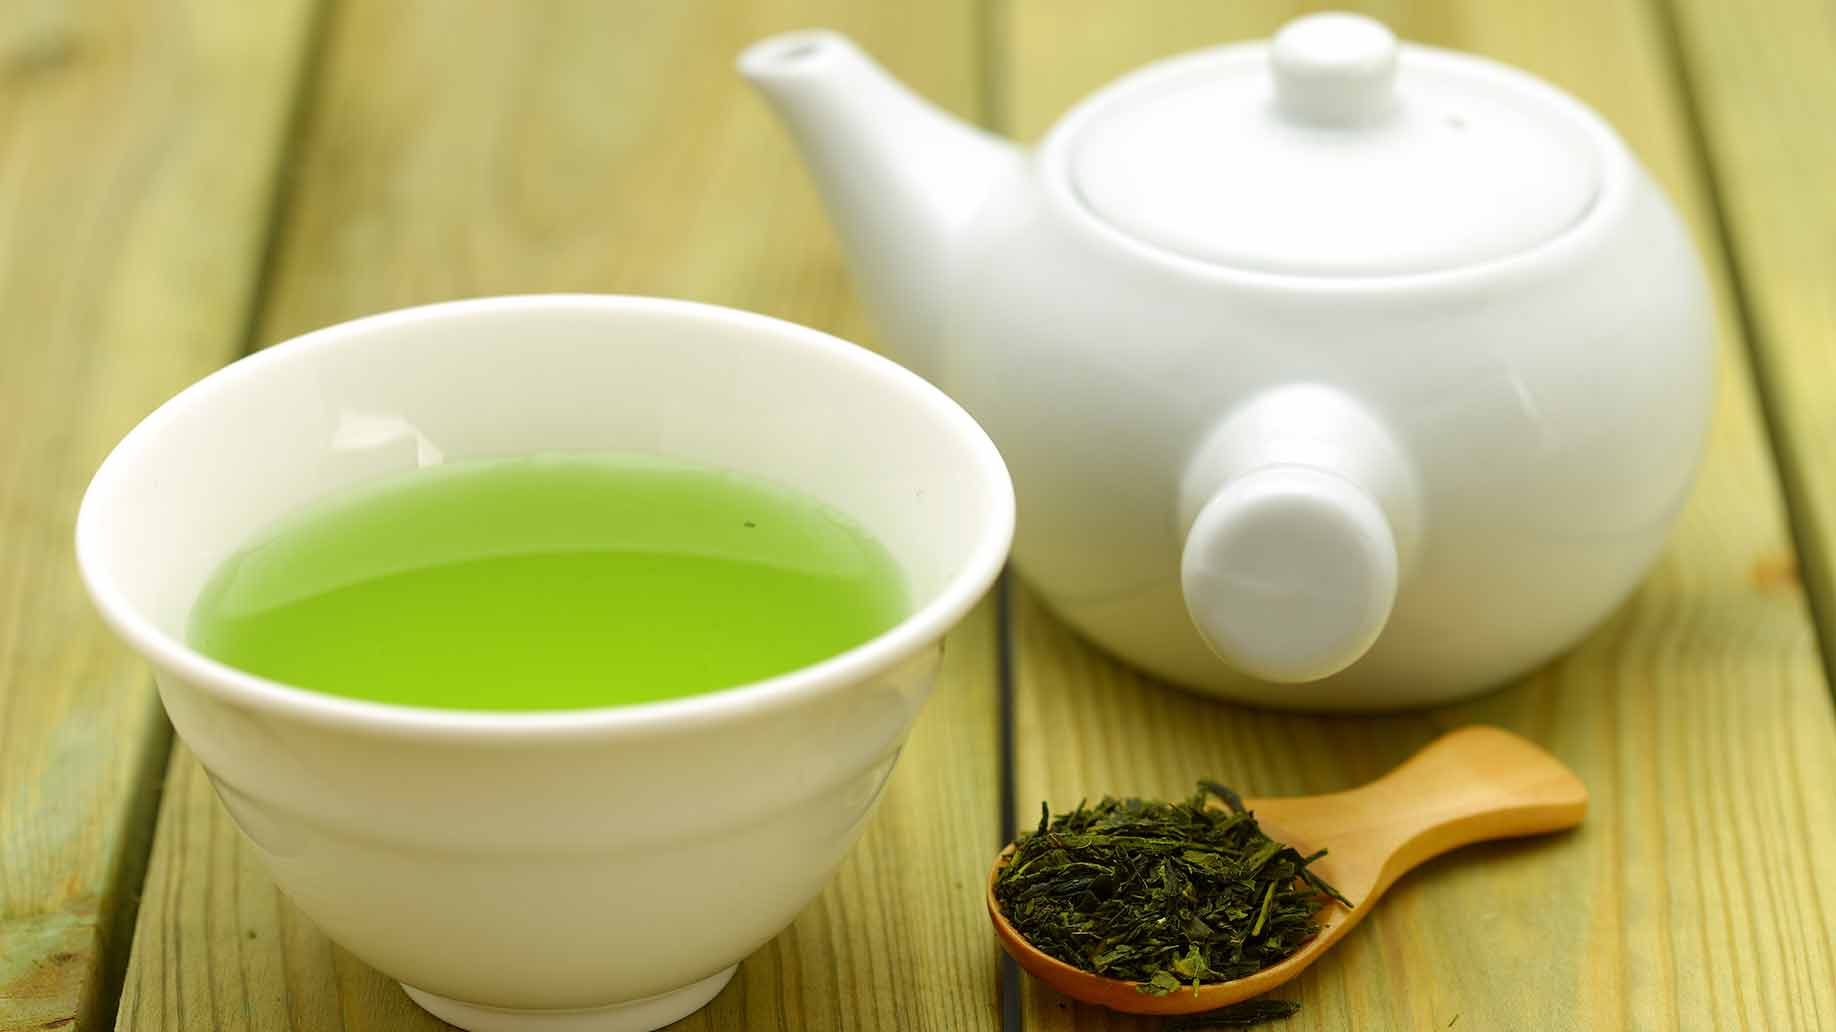 green tea natural health benefits polyphenols flavonoid catechins